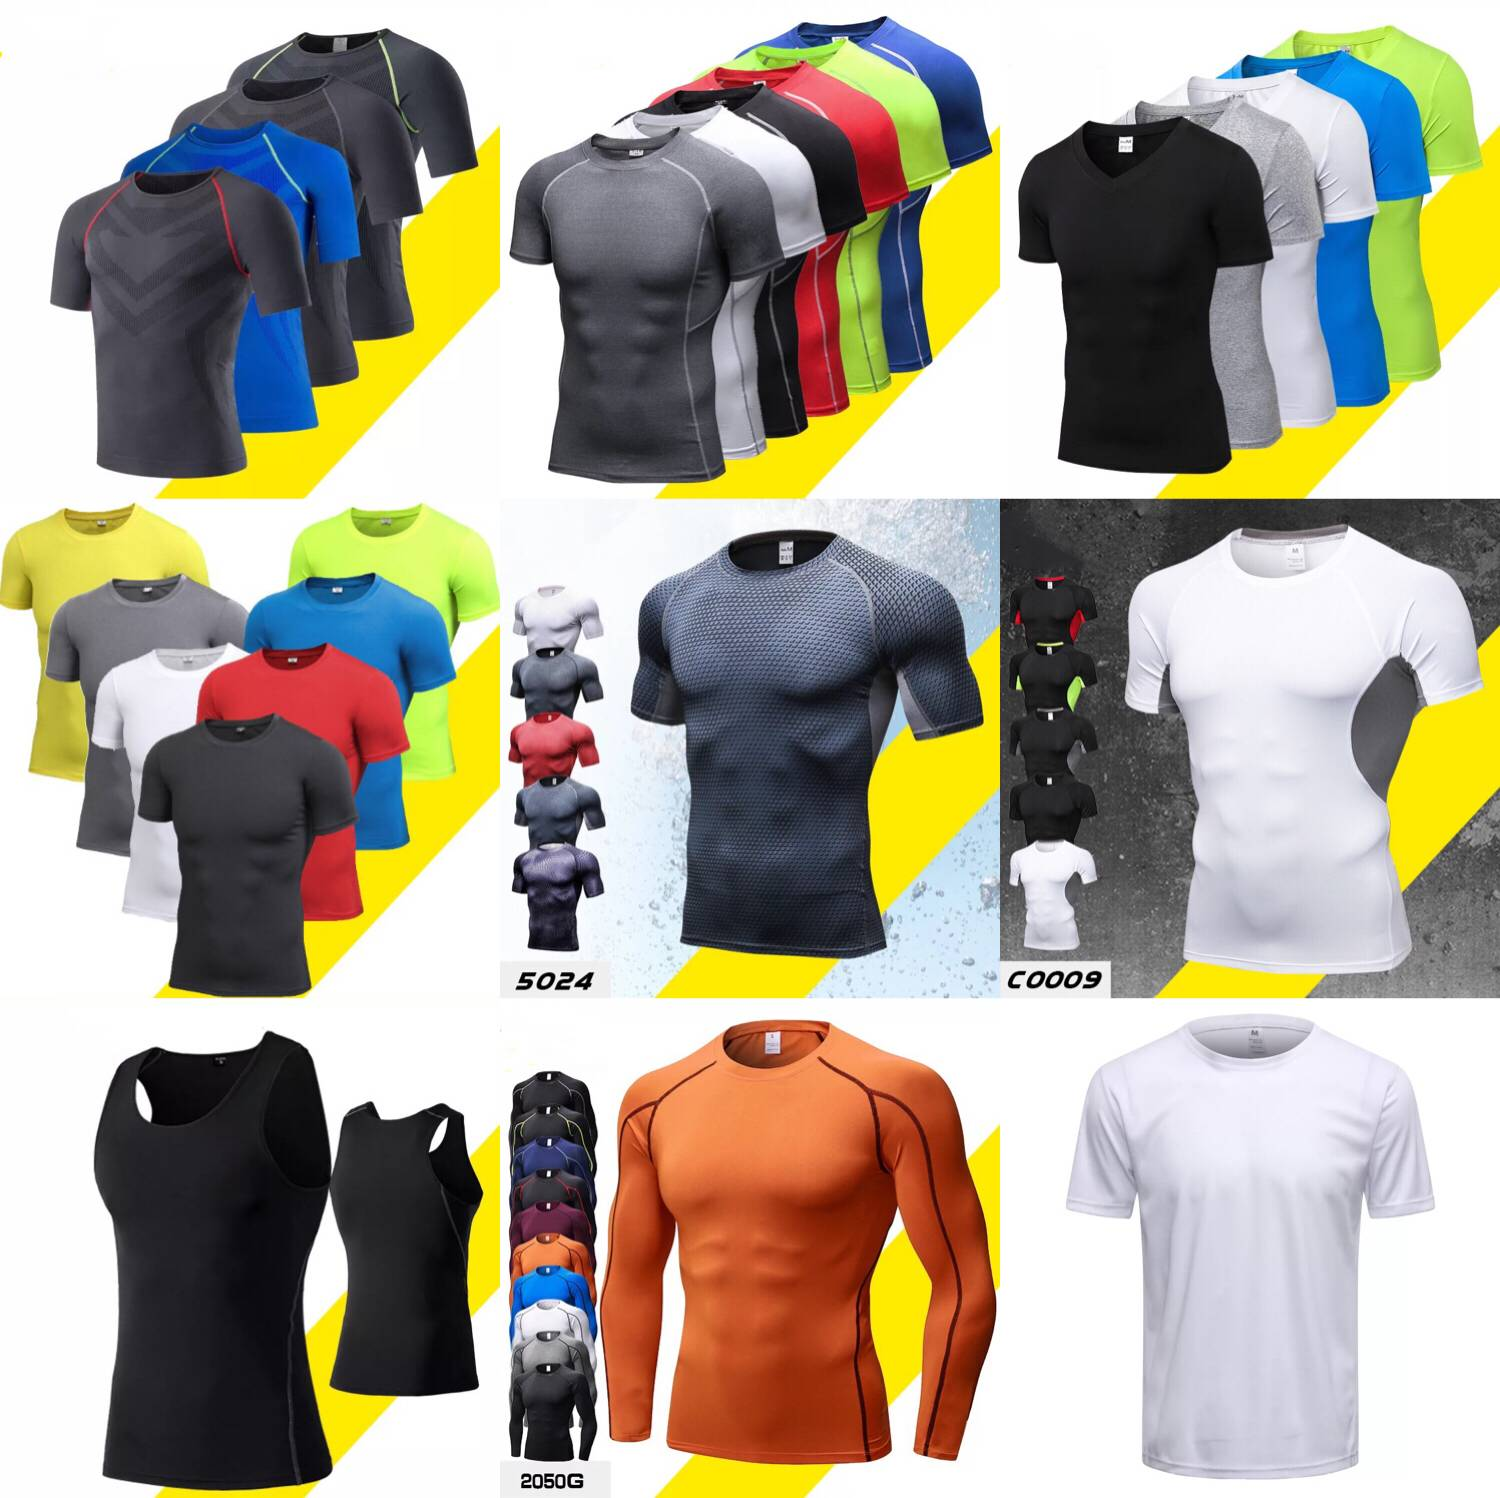 China Wholesale anti-fatigue Men's Clothing Gym Sport Wear Tight Men's sports t shirts